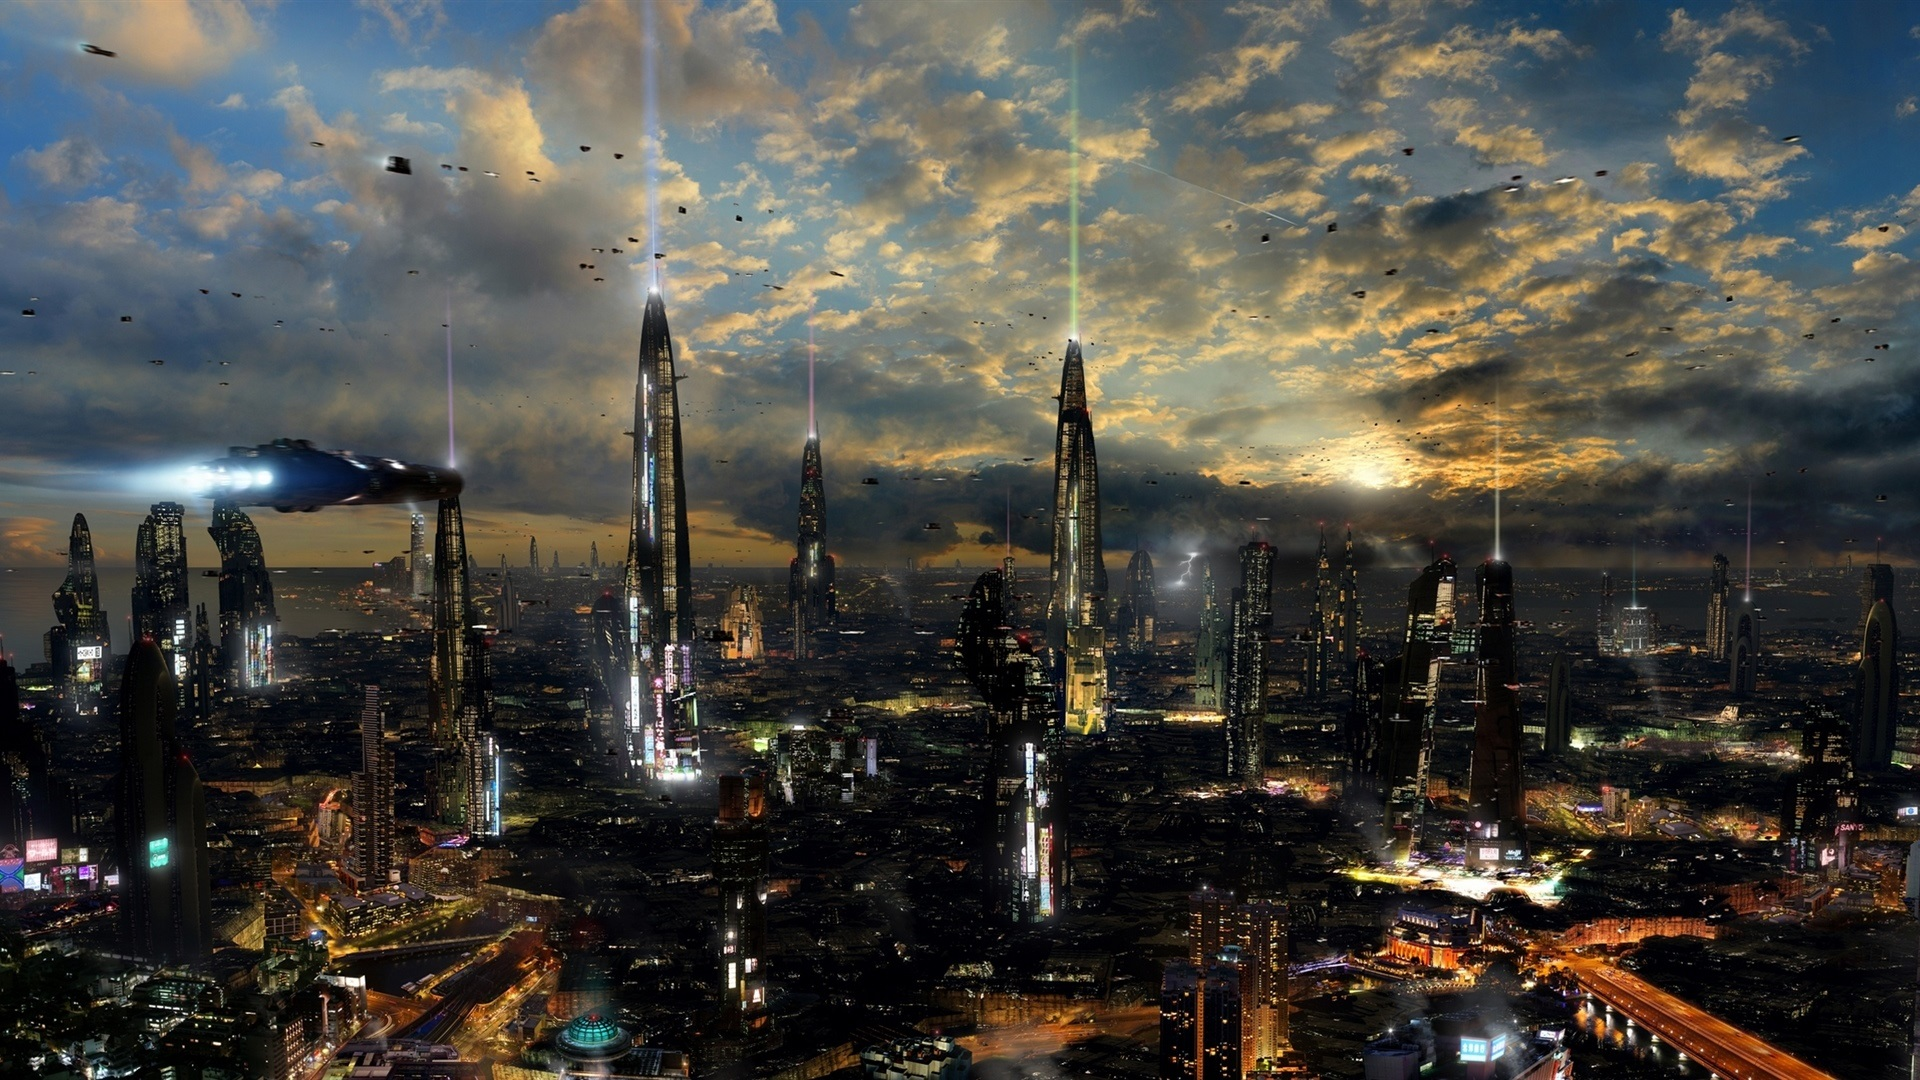 Wallpaper Futuristic City Night Lights 1920x1080 Full HD 2K